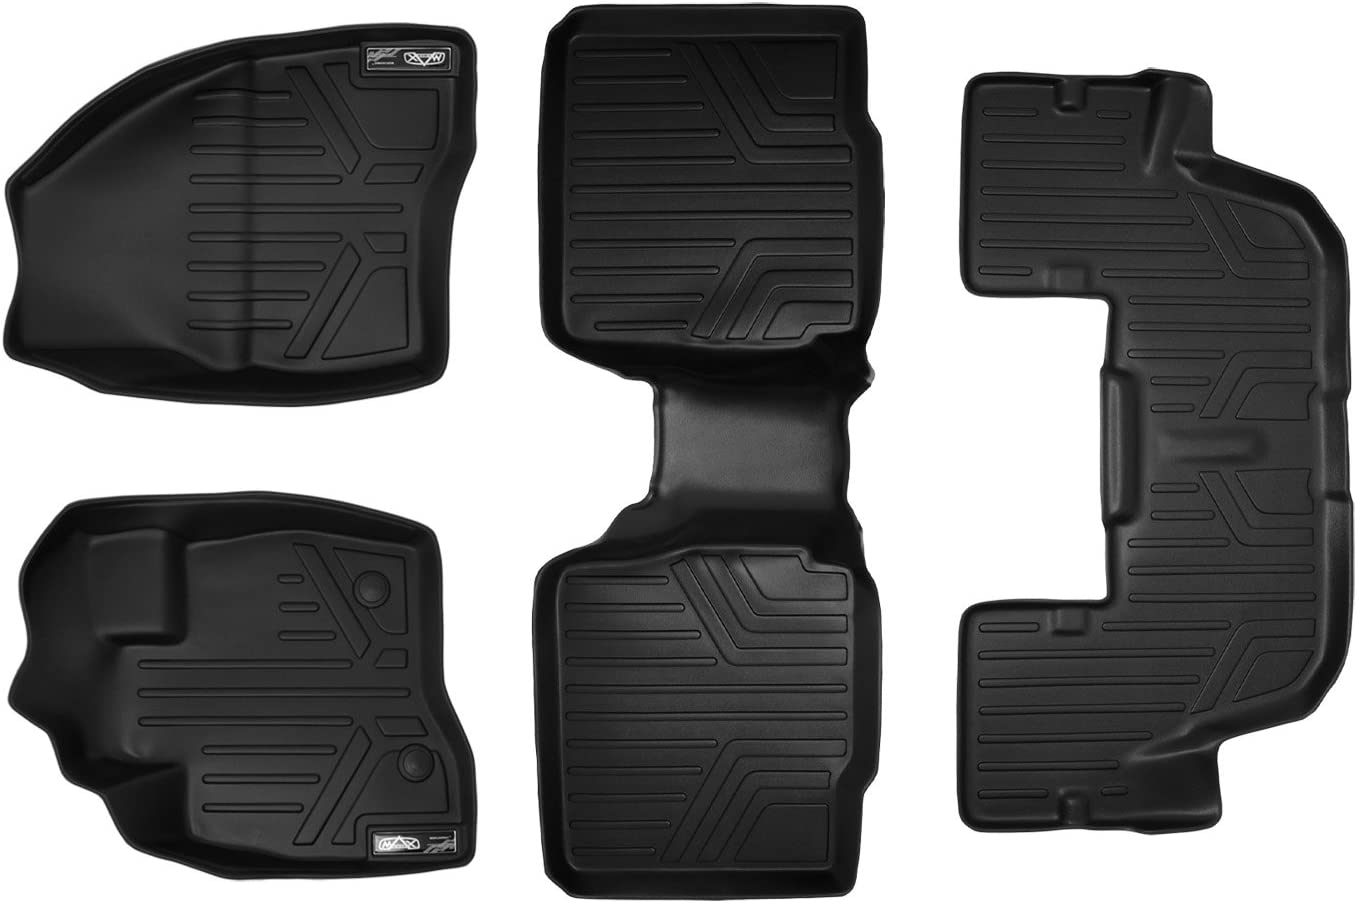 2015-2017 with 2nd Row Center Console Black 2 Row Set MAXLINER A0161//B0109 Floor Mats for Ford Explorer